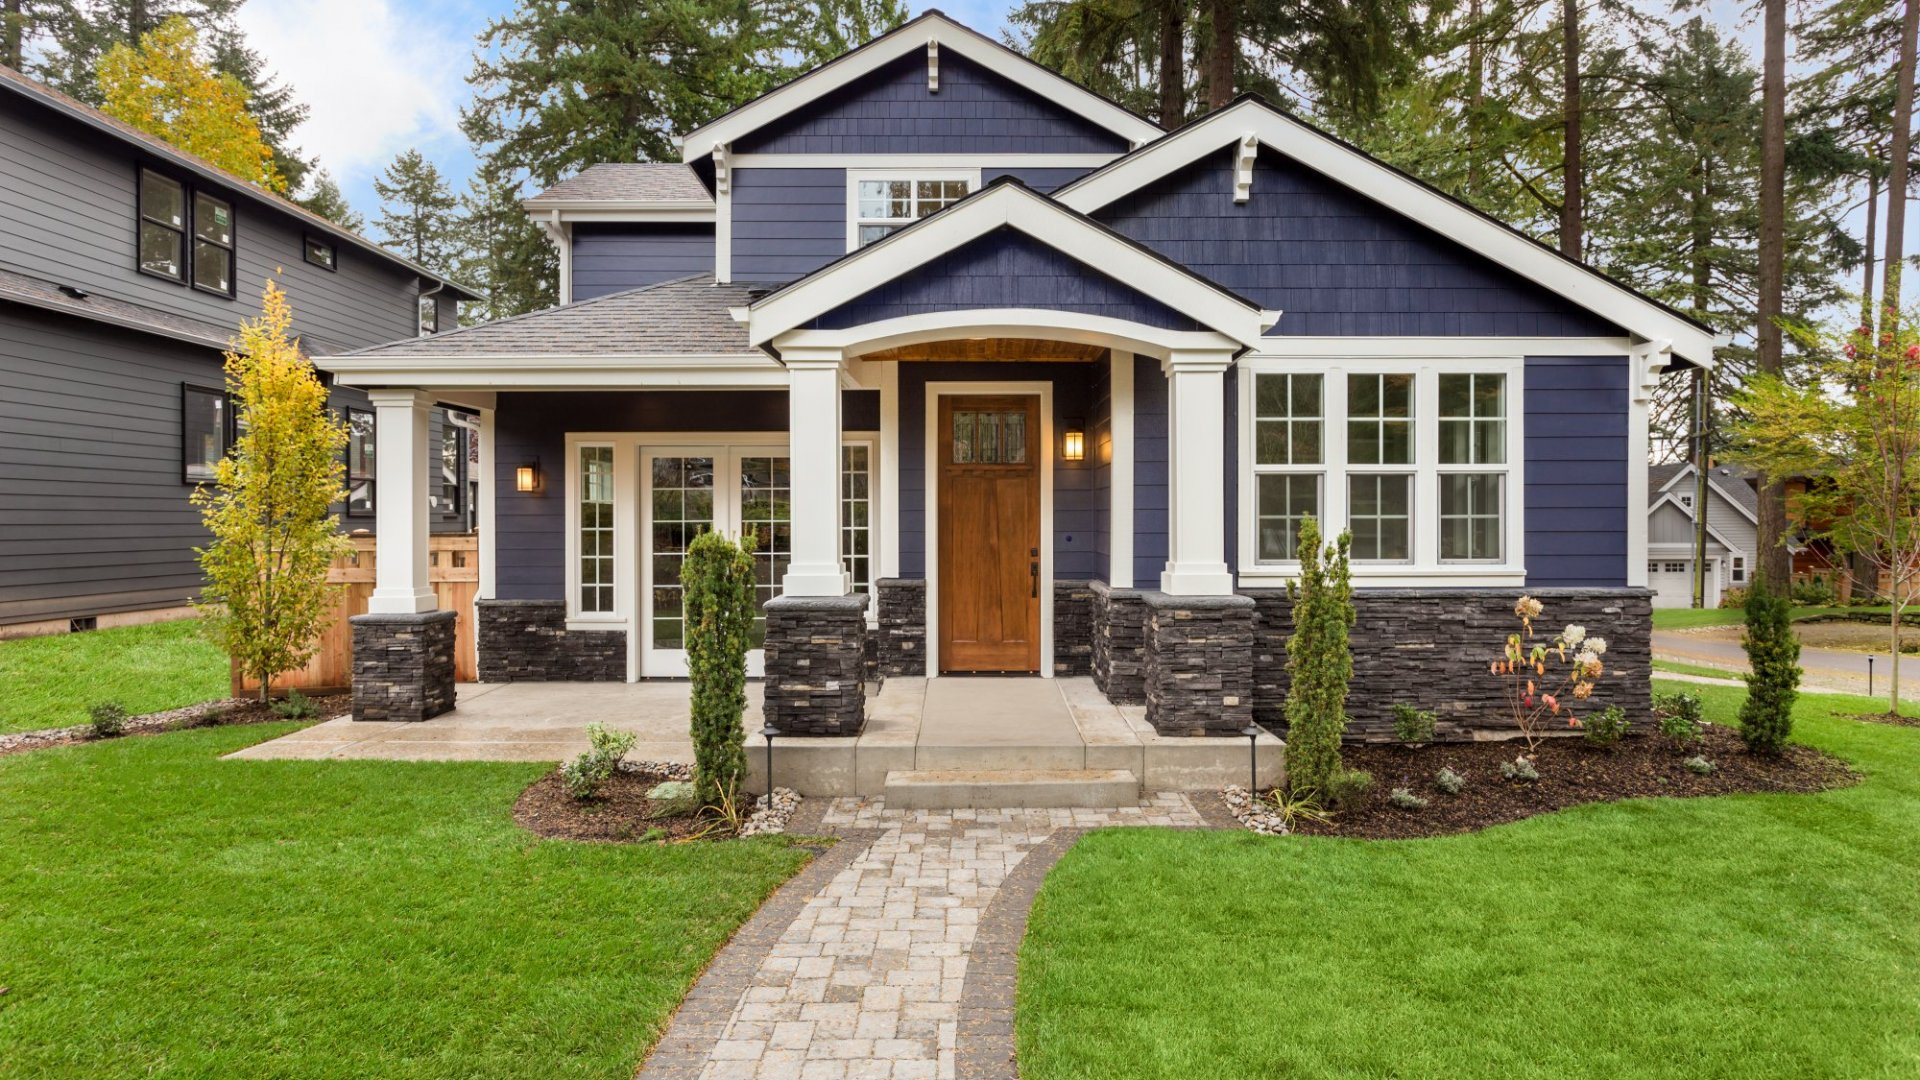 Buying a New House? Here are some things to buy